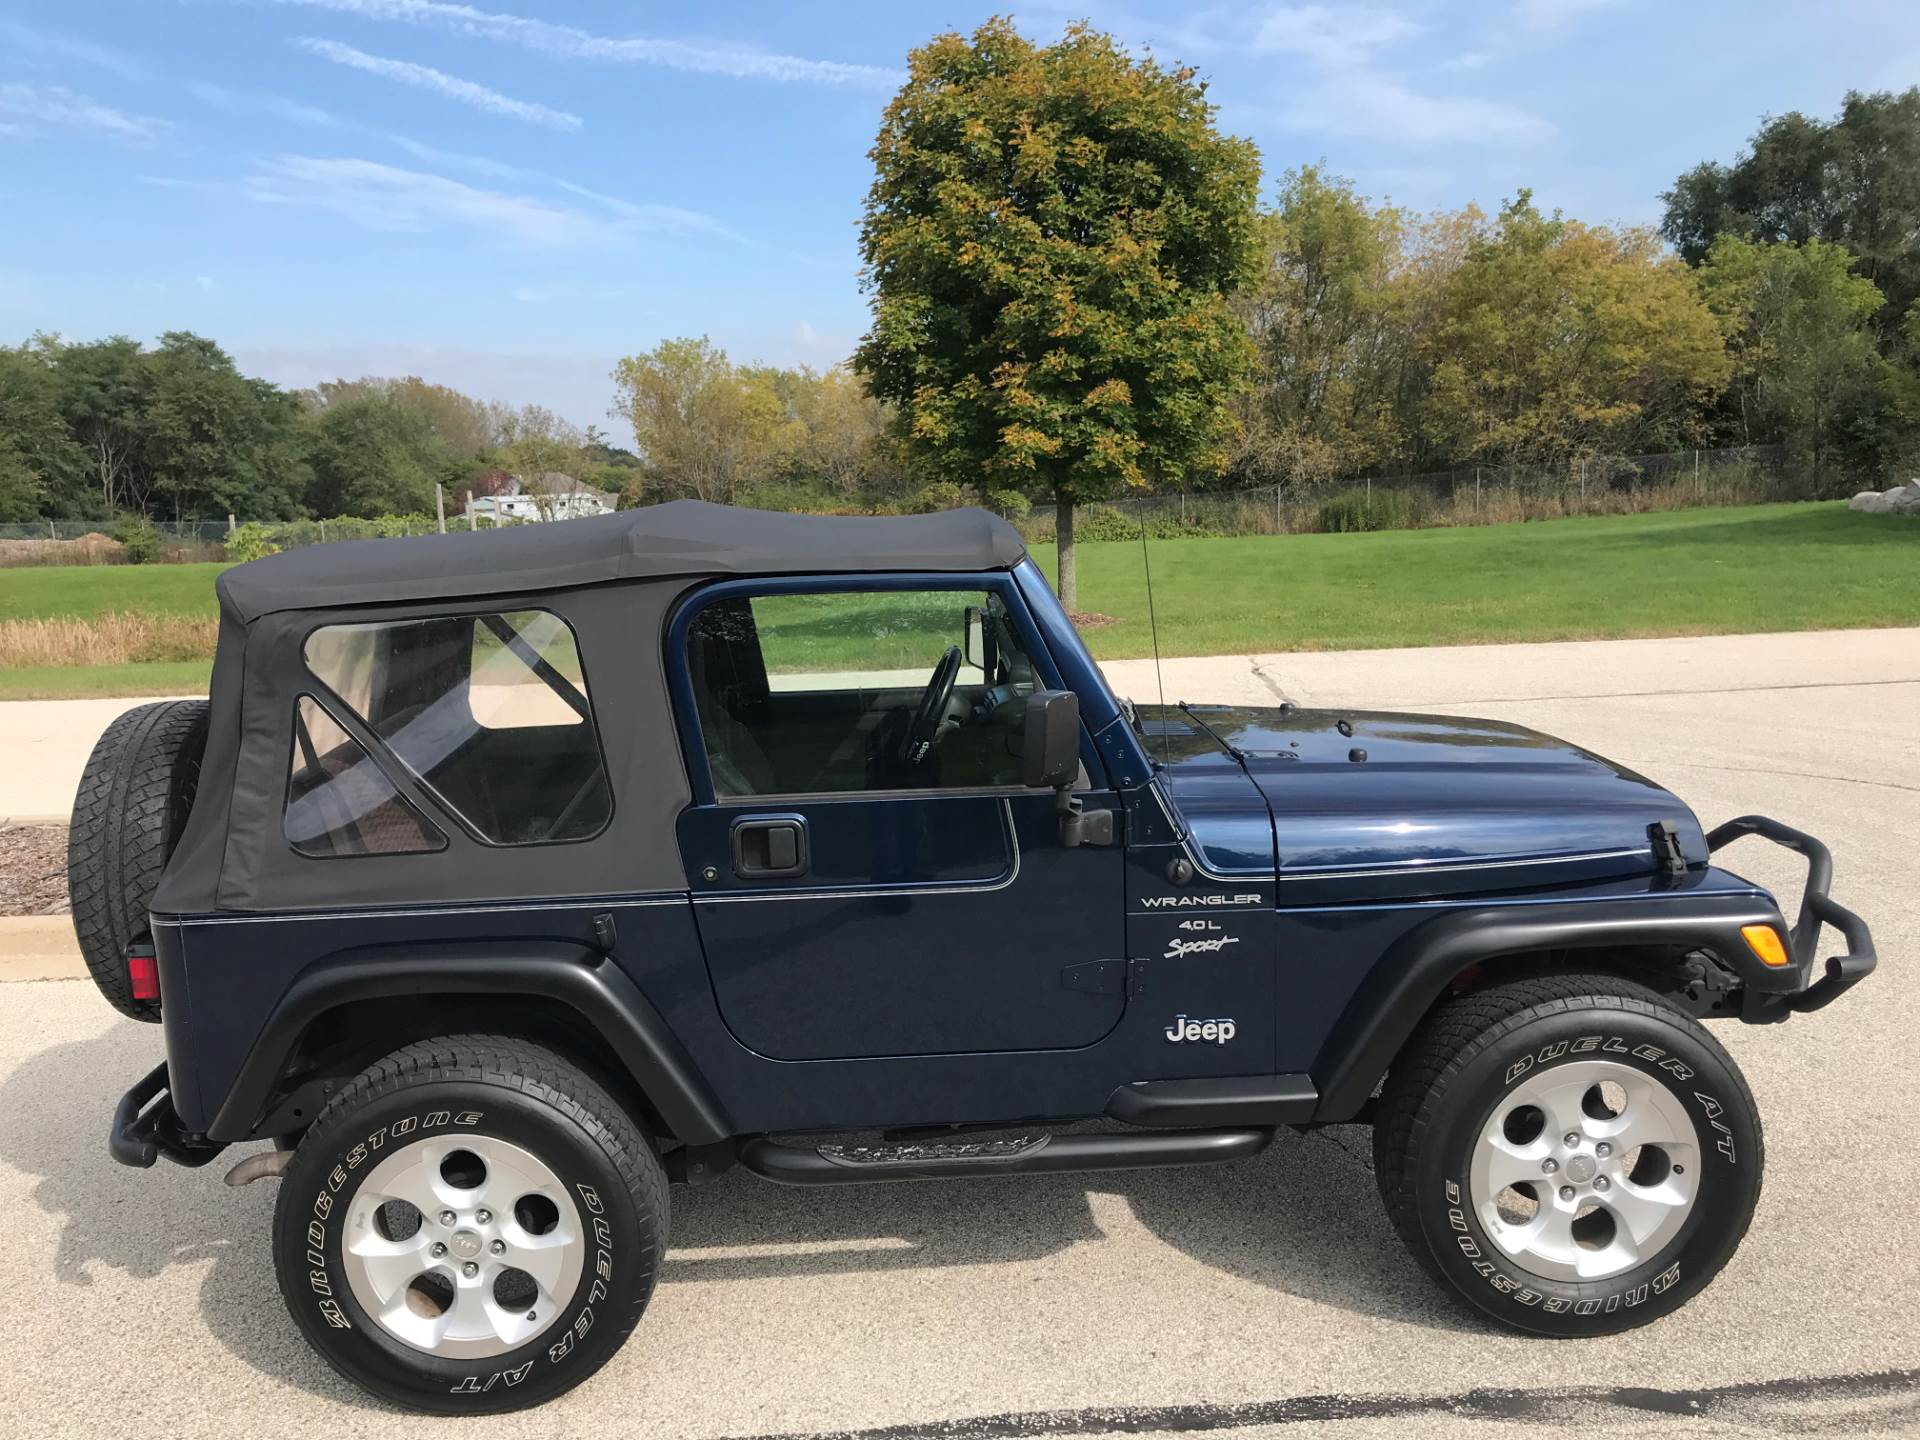 2000 Jeep Wrangler Sport 2dr 4WD SUV in Big Bend, Wisconsin - Photo 8